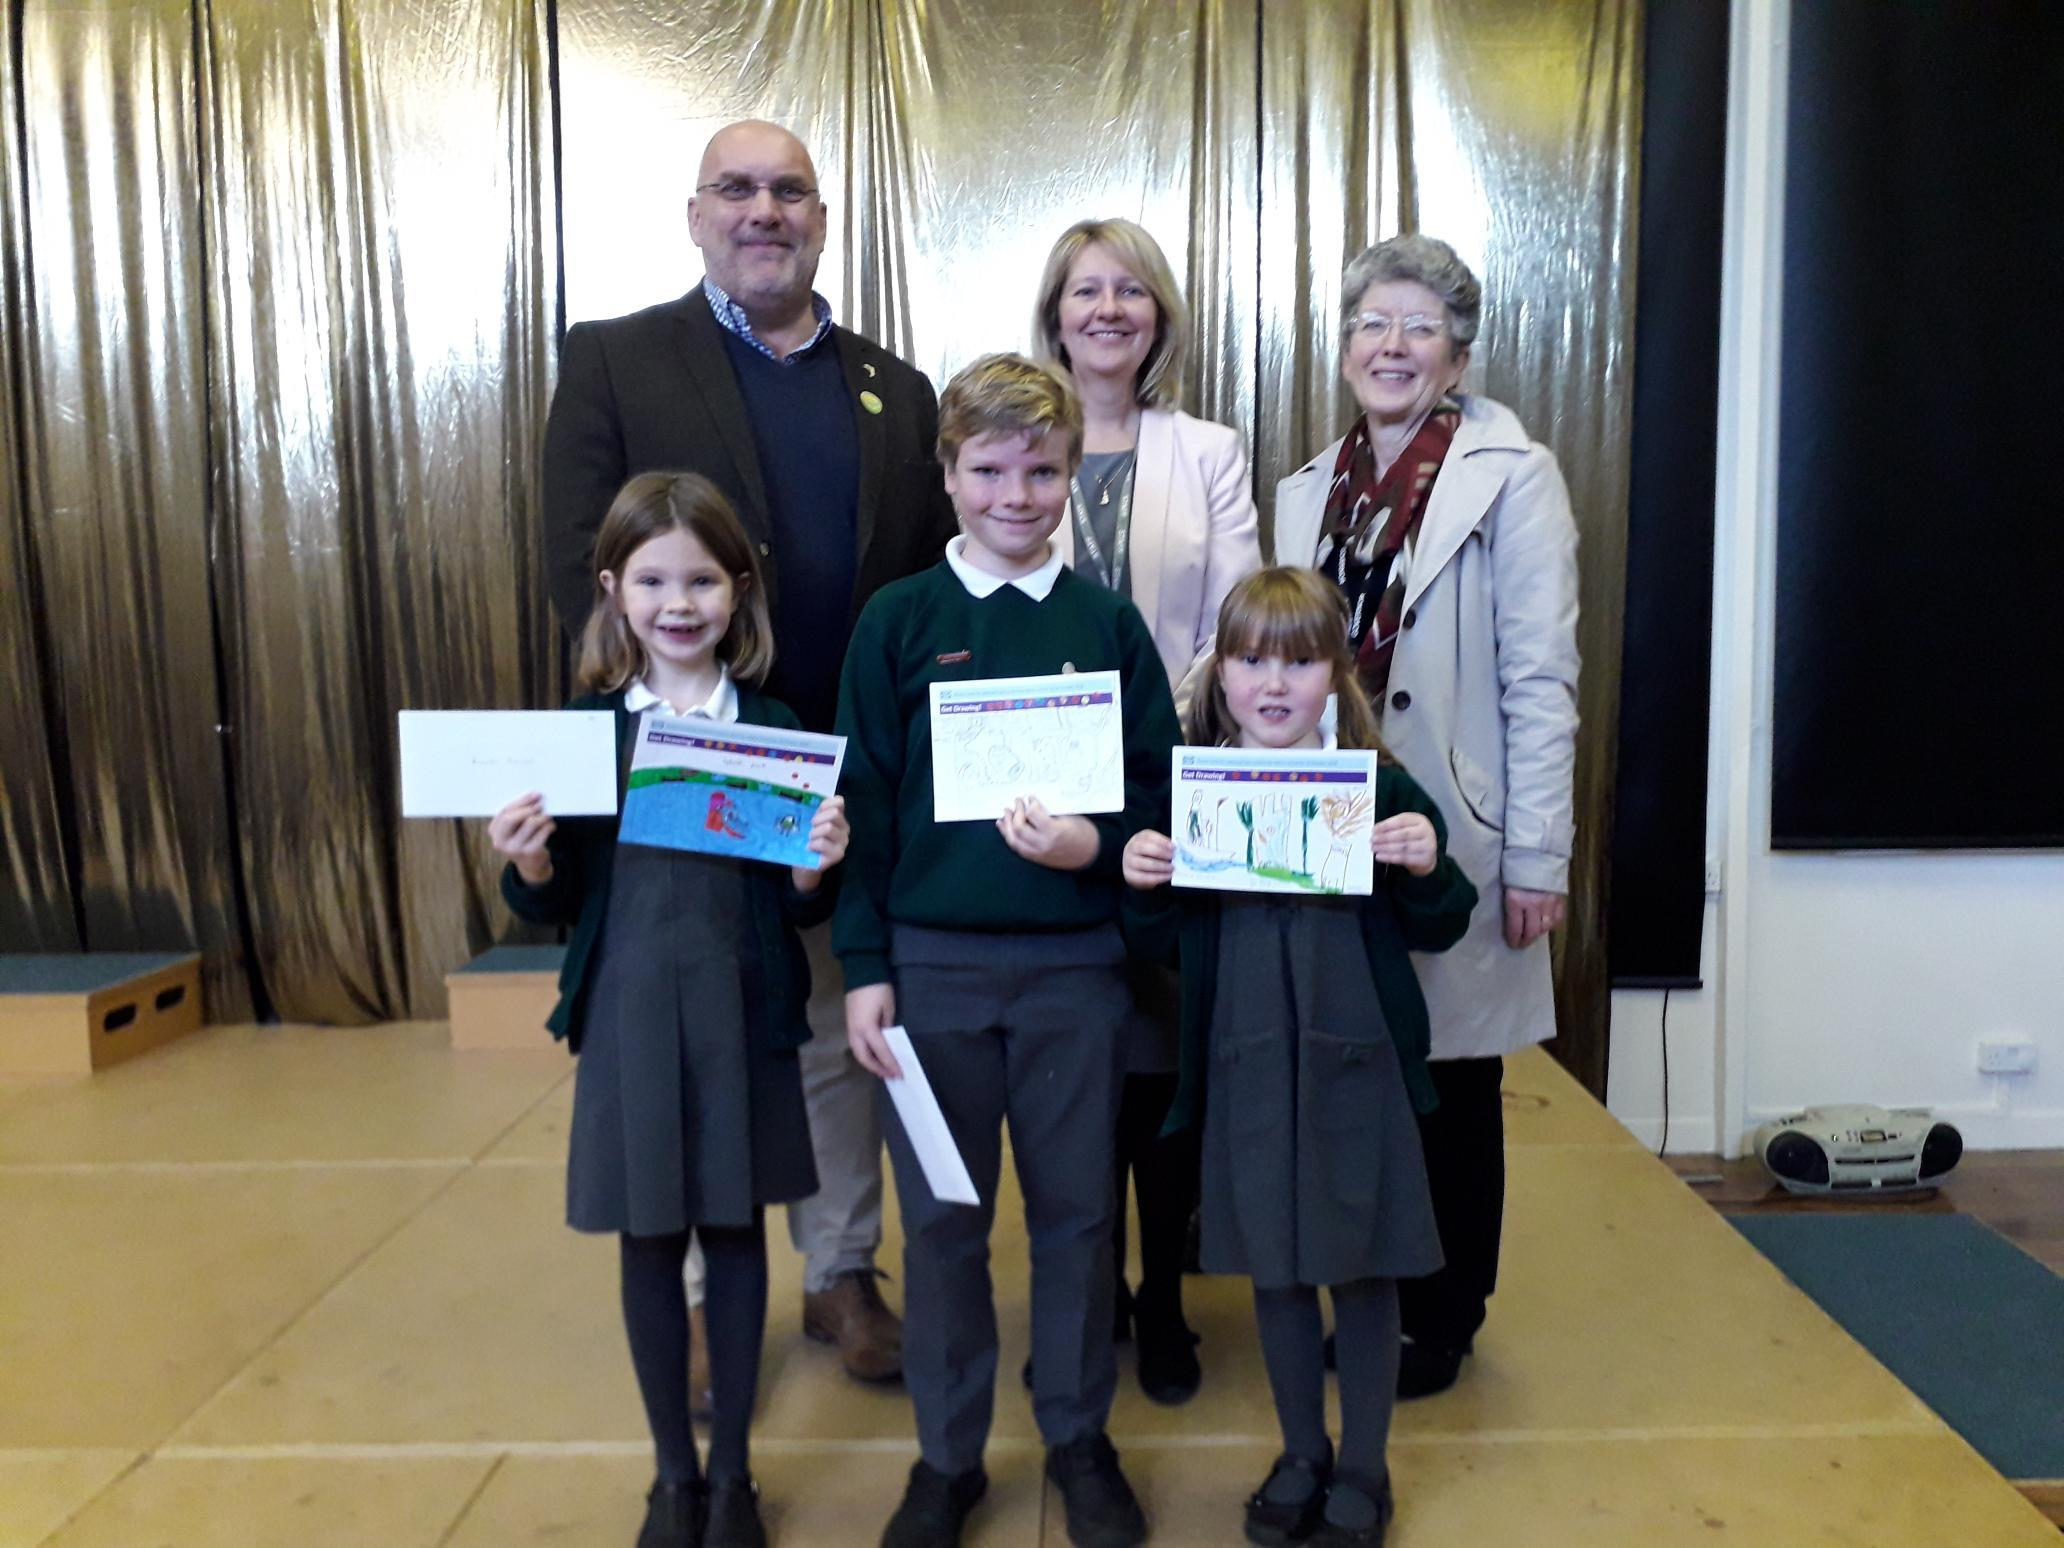 Chair of Romsey Future, councillor Nick Adams-King alongside head teacher Julie-Anne Palfrey and chair of governors, Liz Wagner with winner Annabel Blencowe (left), Toby Davies and Hadleigh Auger.